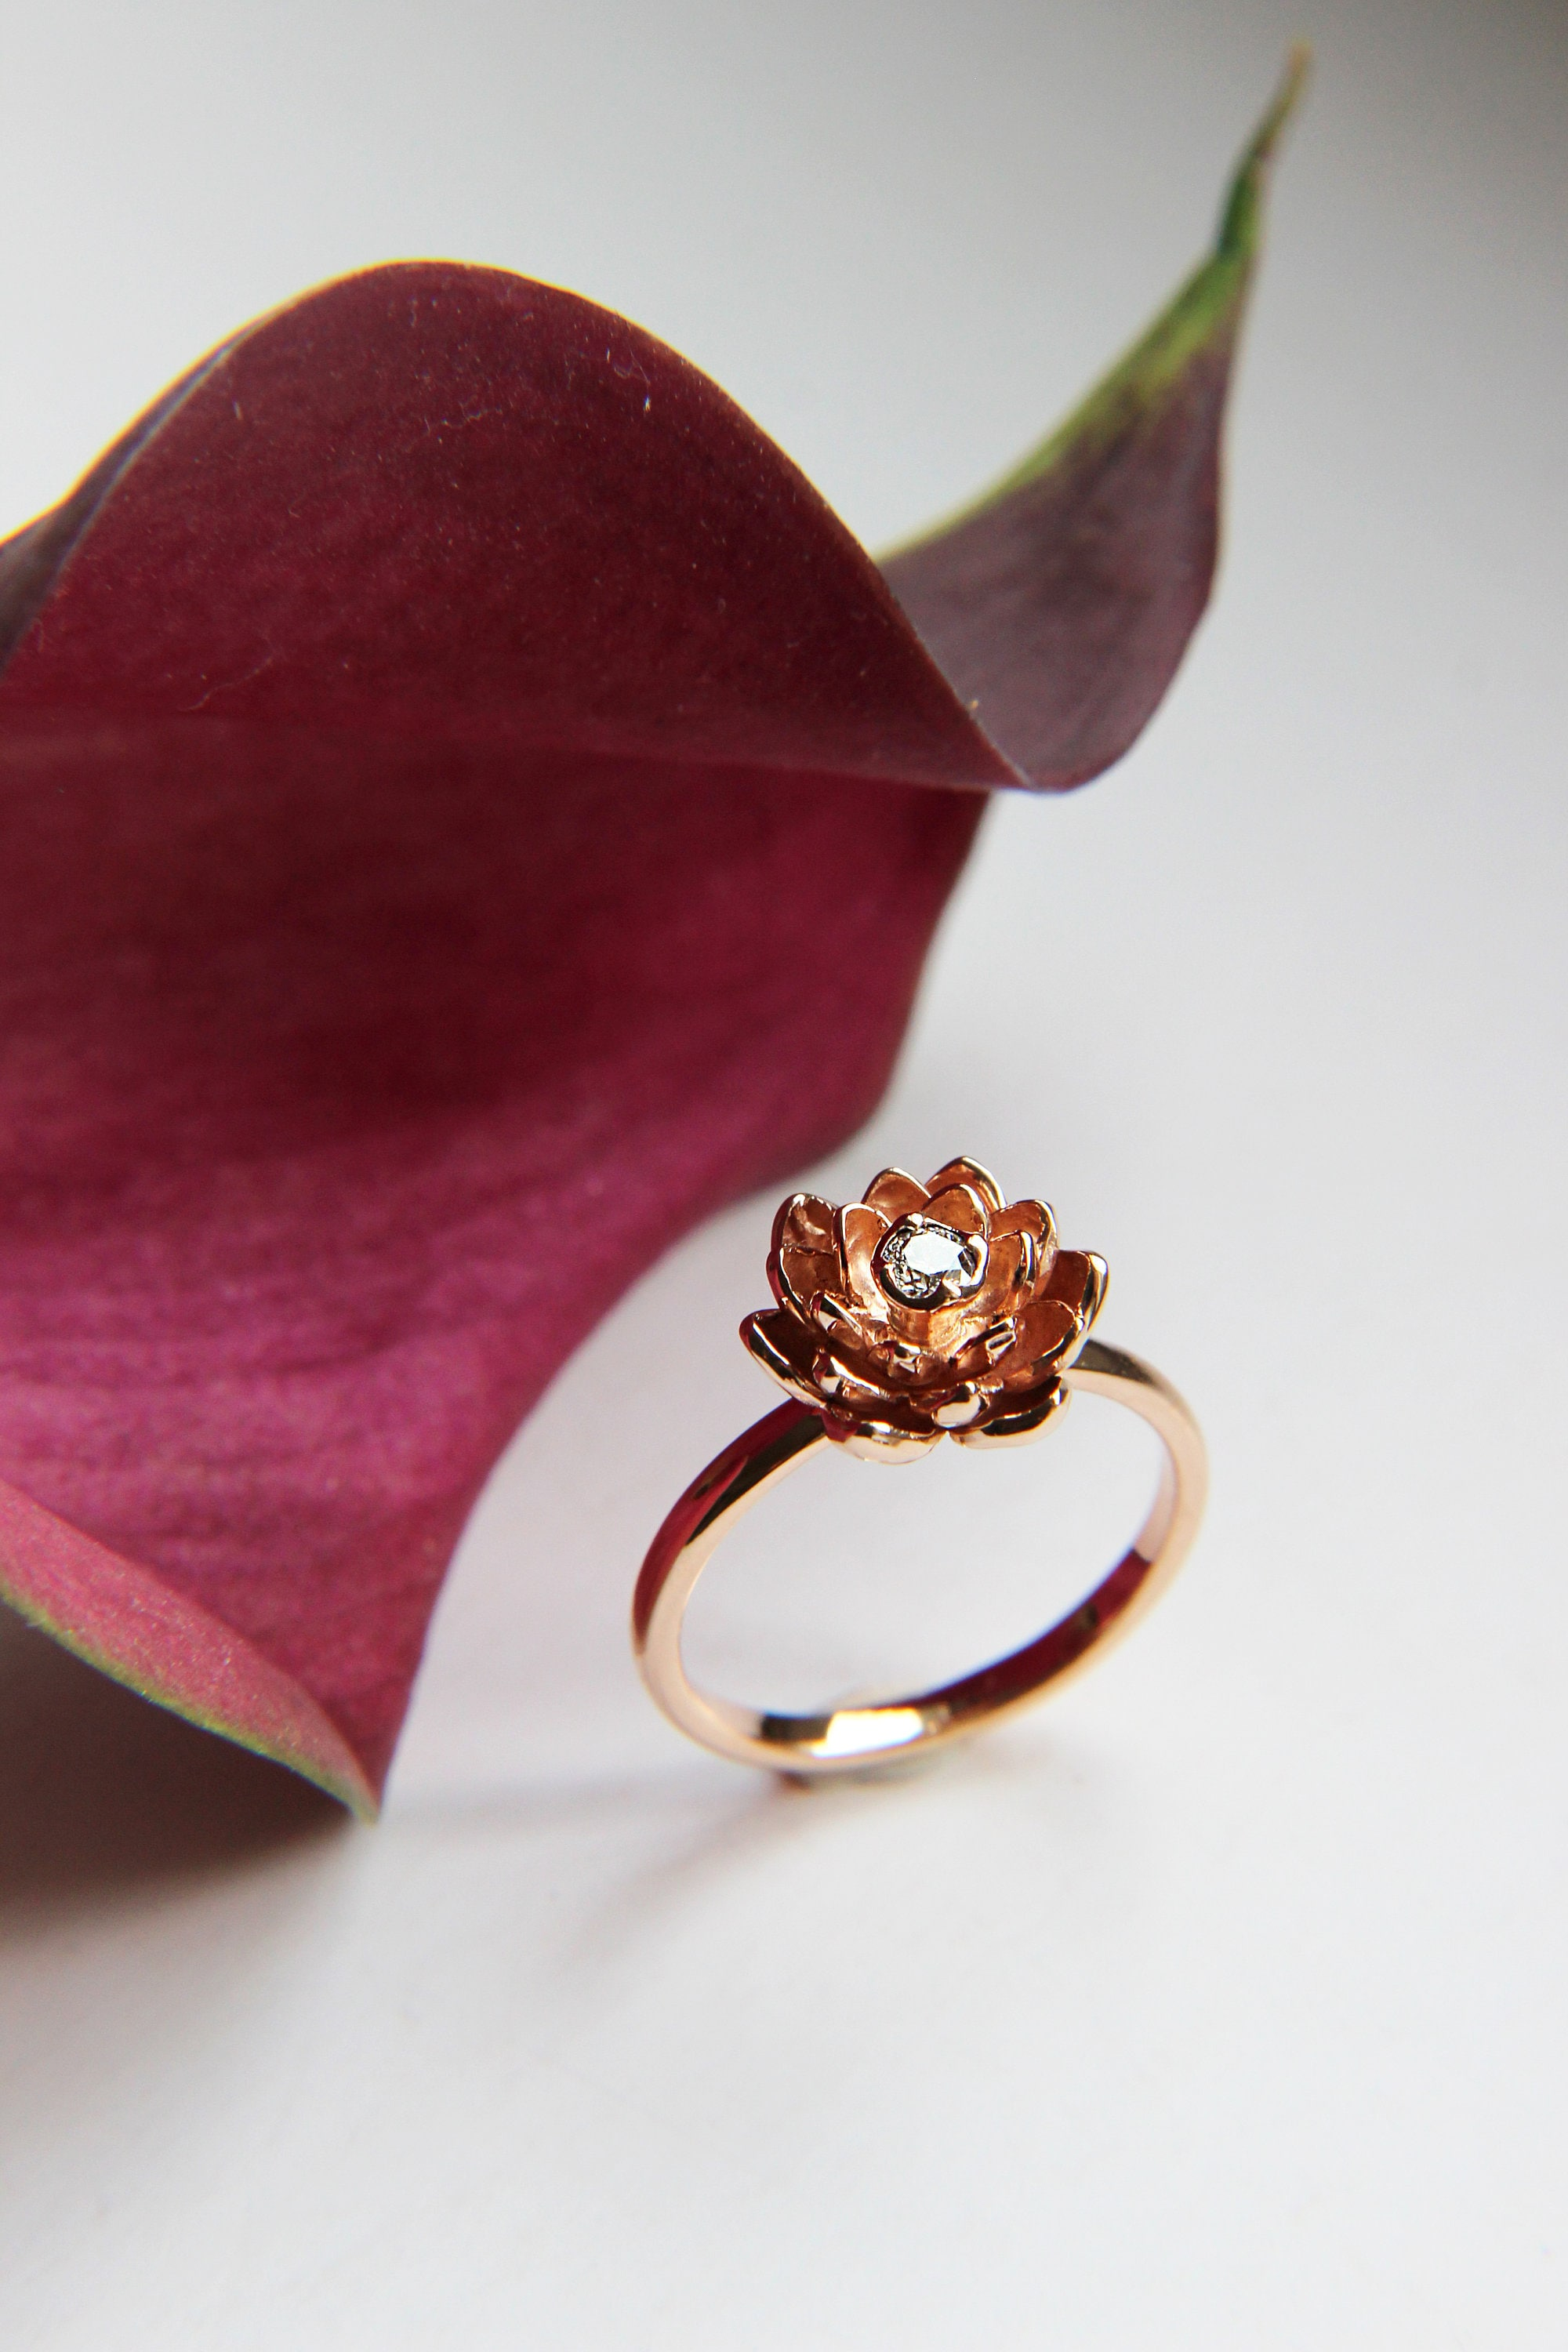 promise wedding hand lotus diamond engagement rose right vintage soltaire prong il rings products gold ring fullxfull